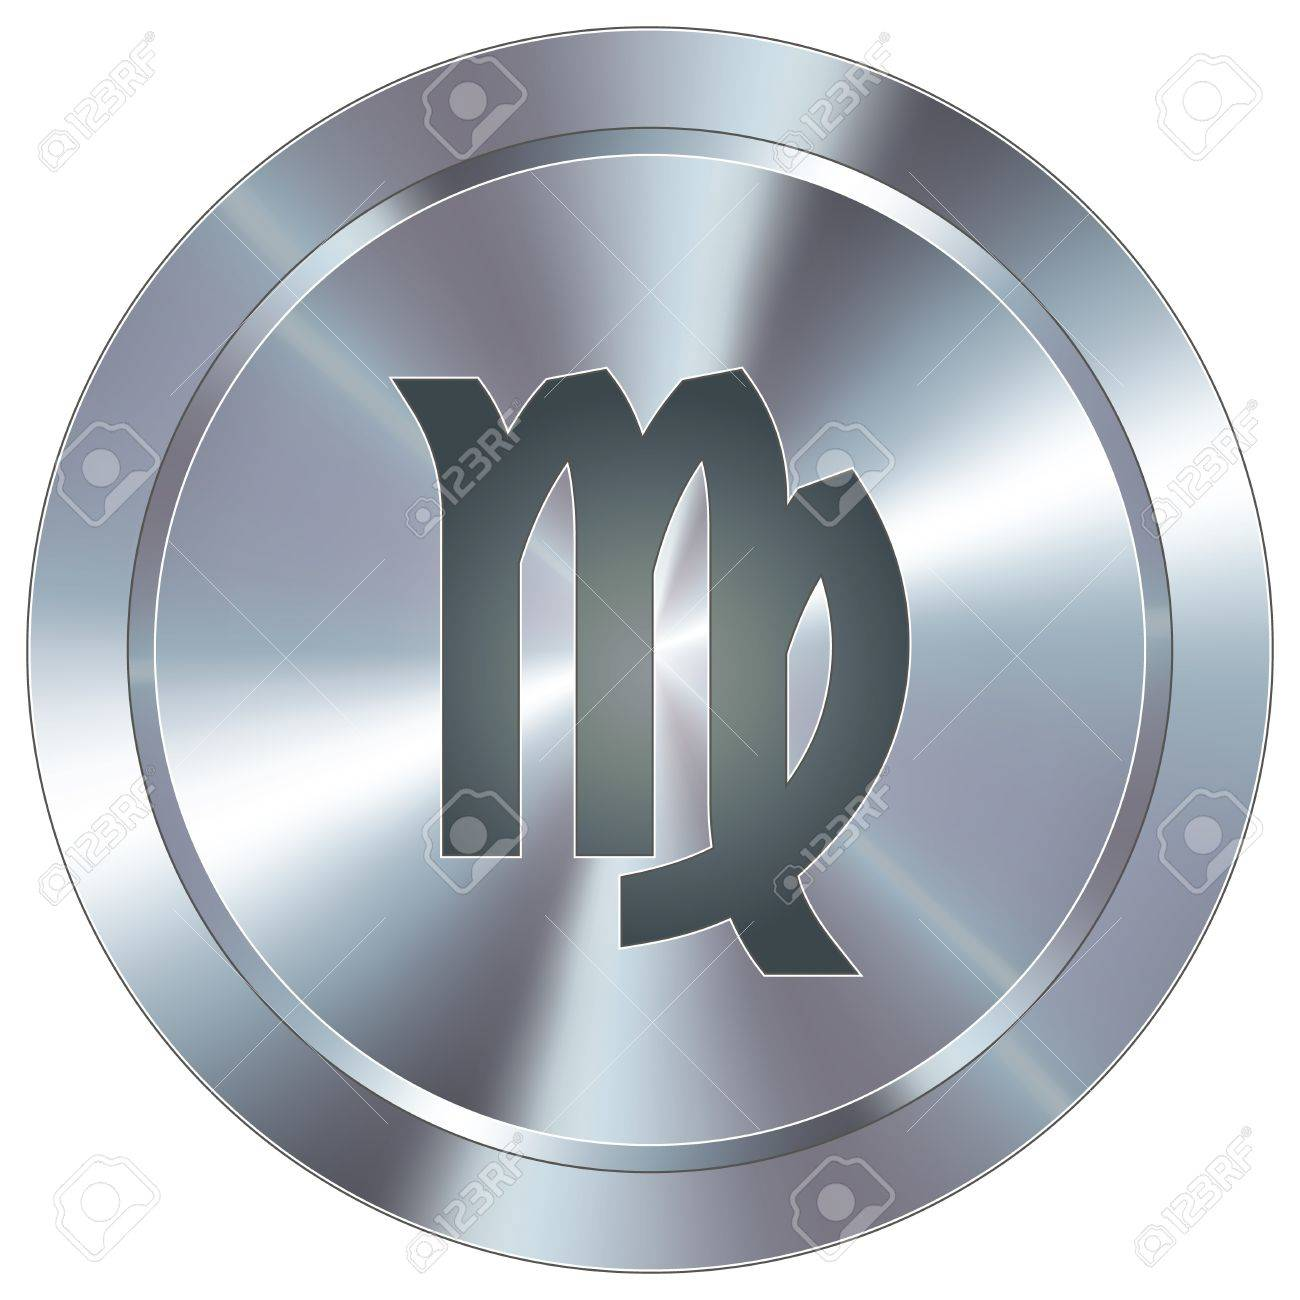 Virgo icon on round stainless steel modern industrial button Stock Vector - 14666076